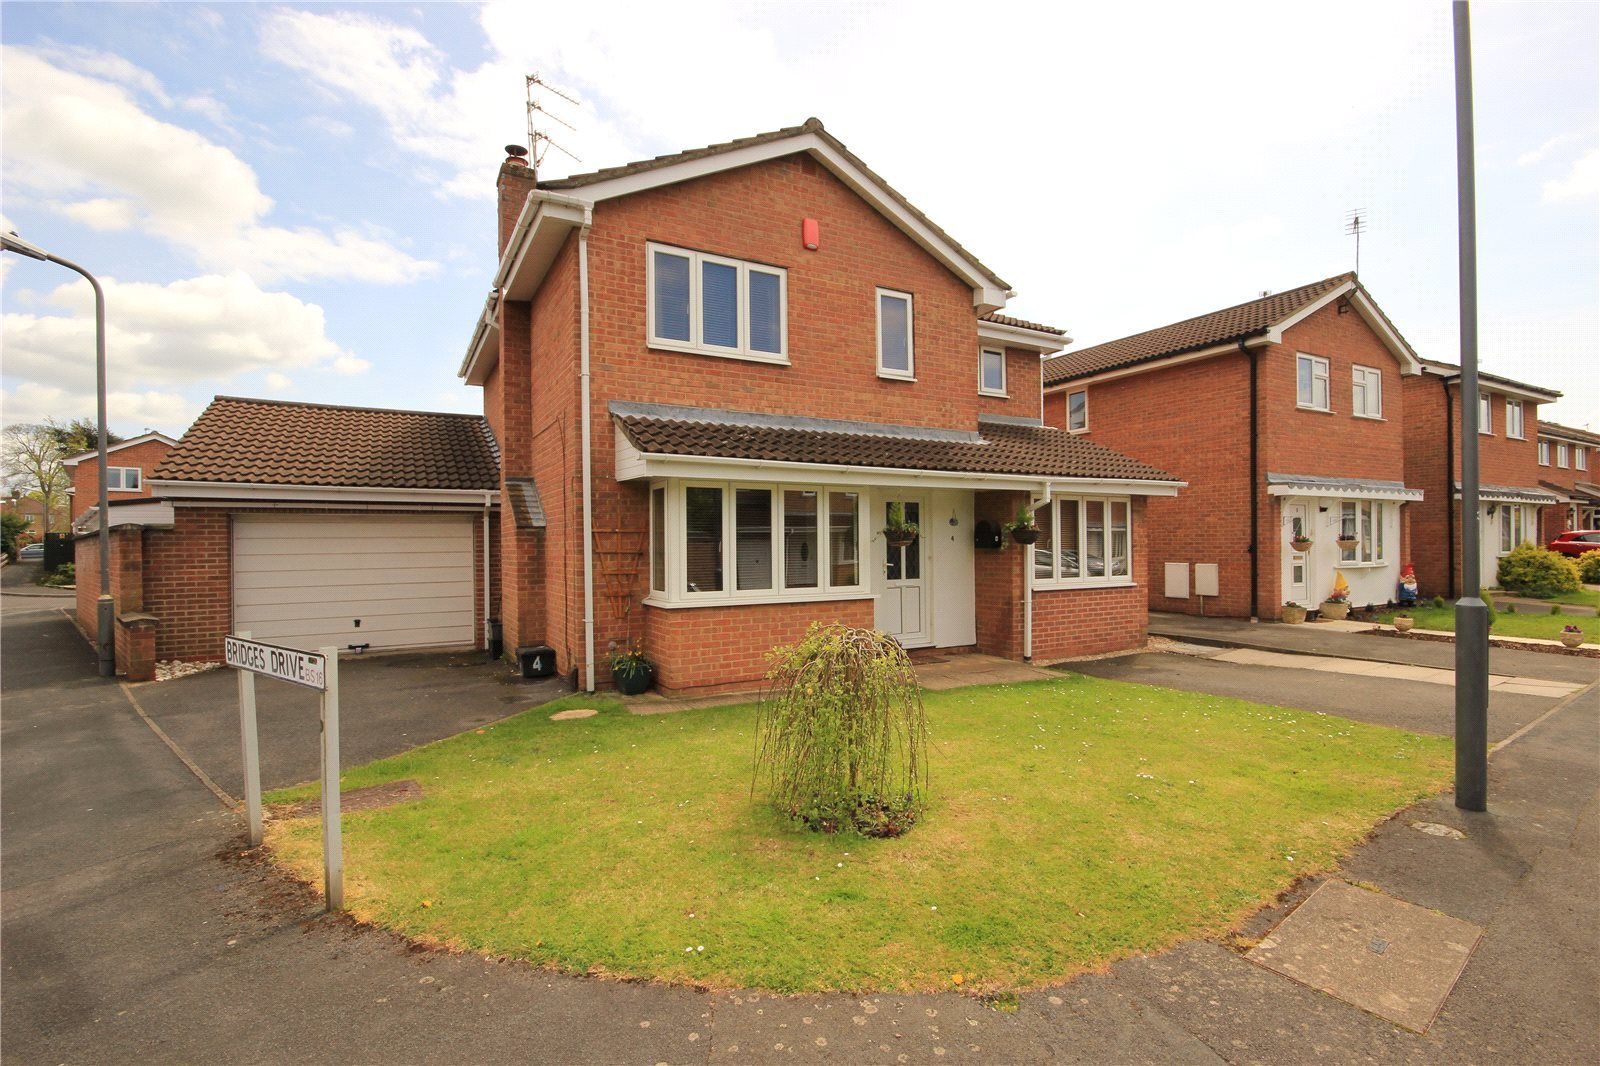 5 Bedroom House For Sale In Long Close Downend Bristol BS16 CJ Hole